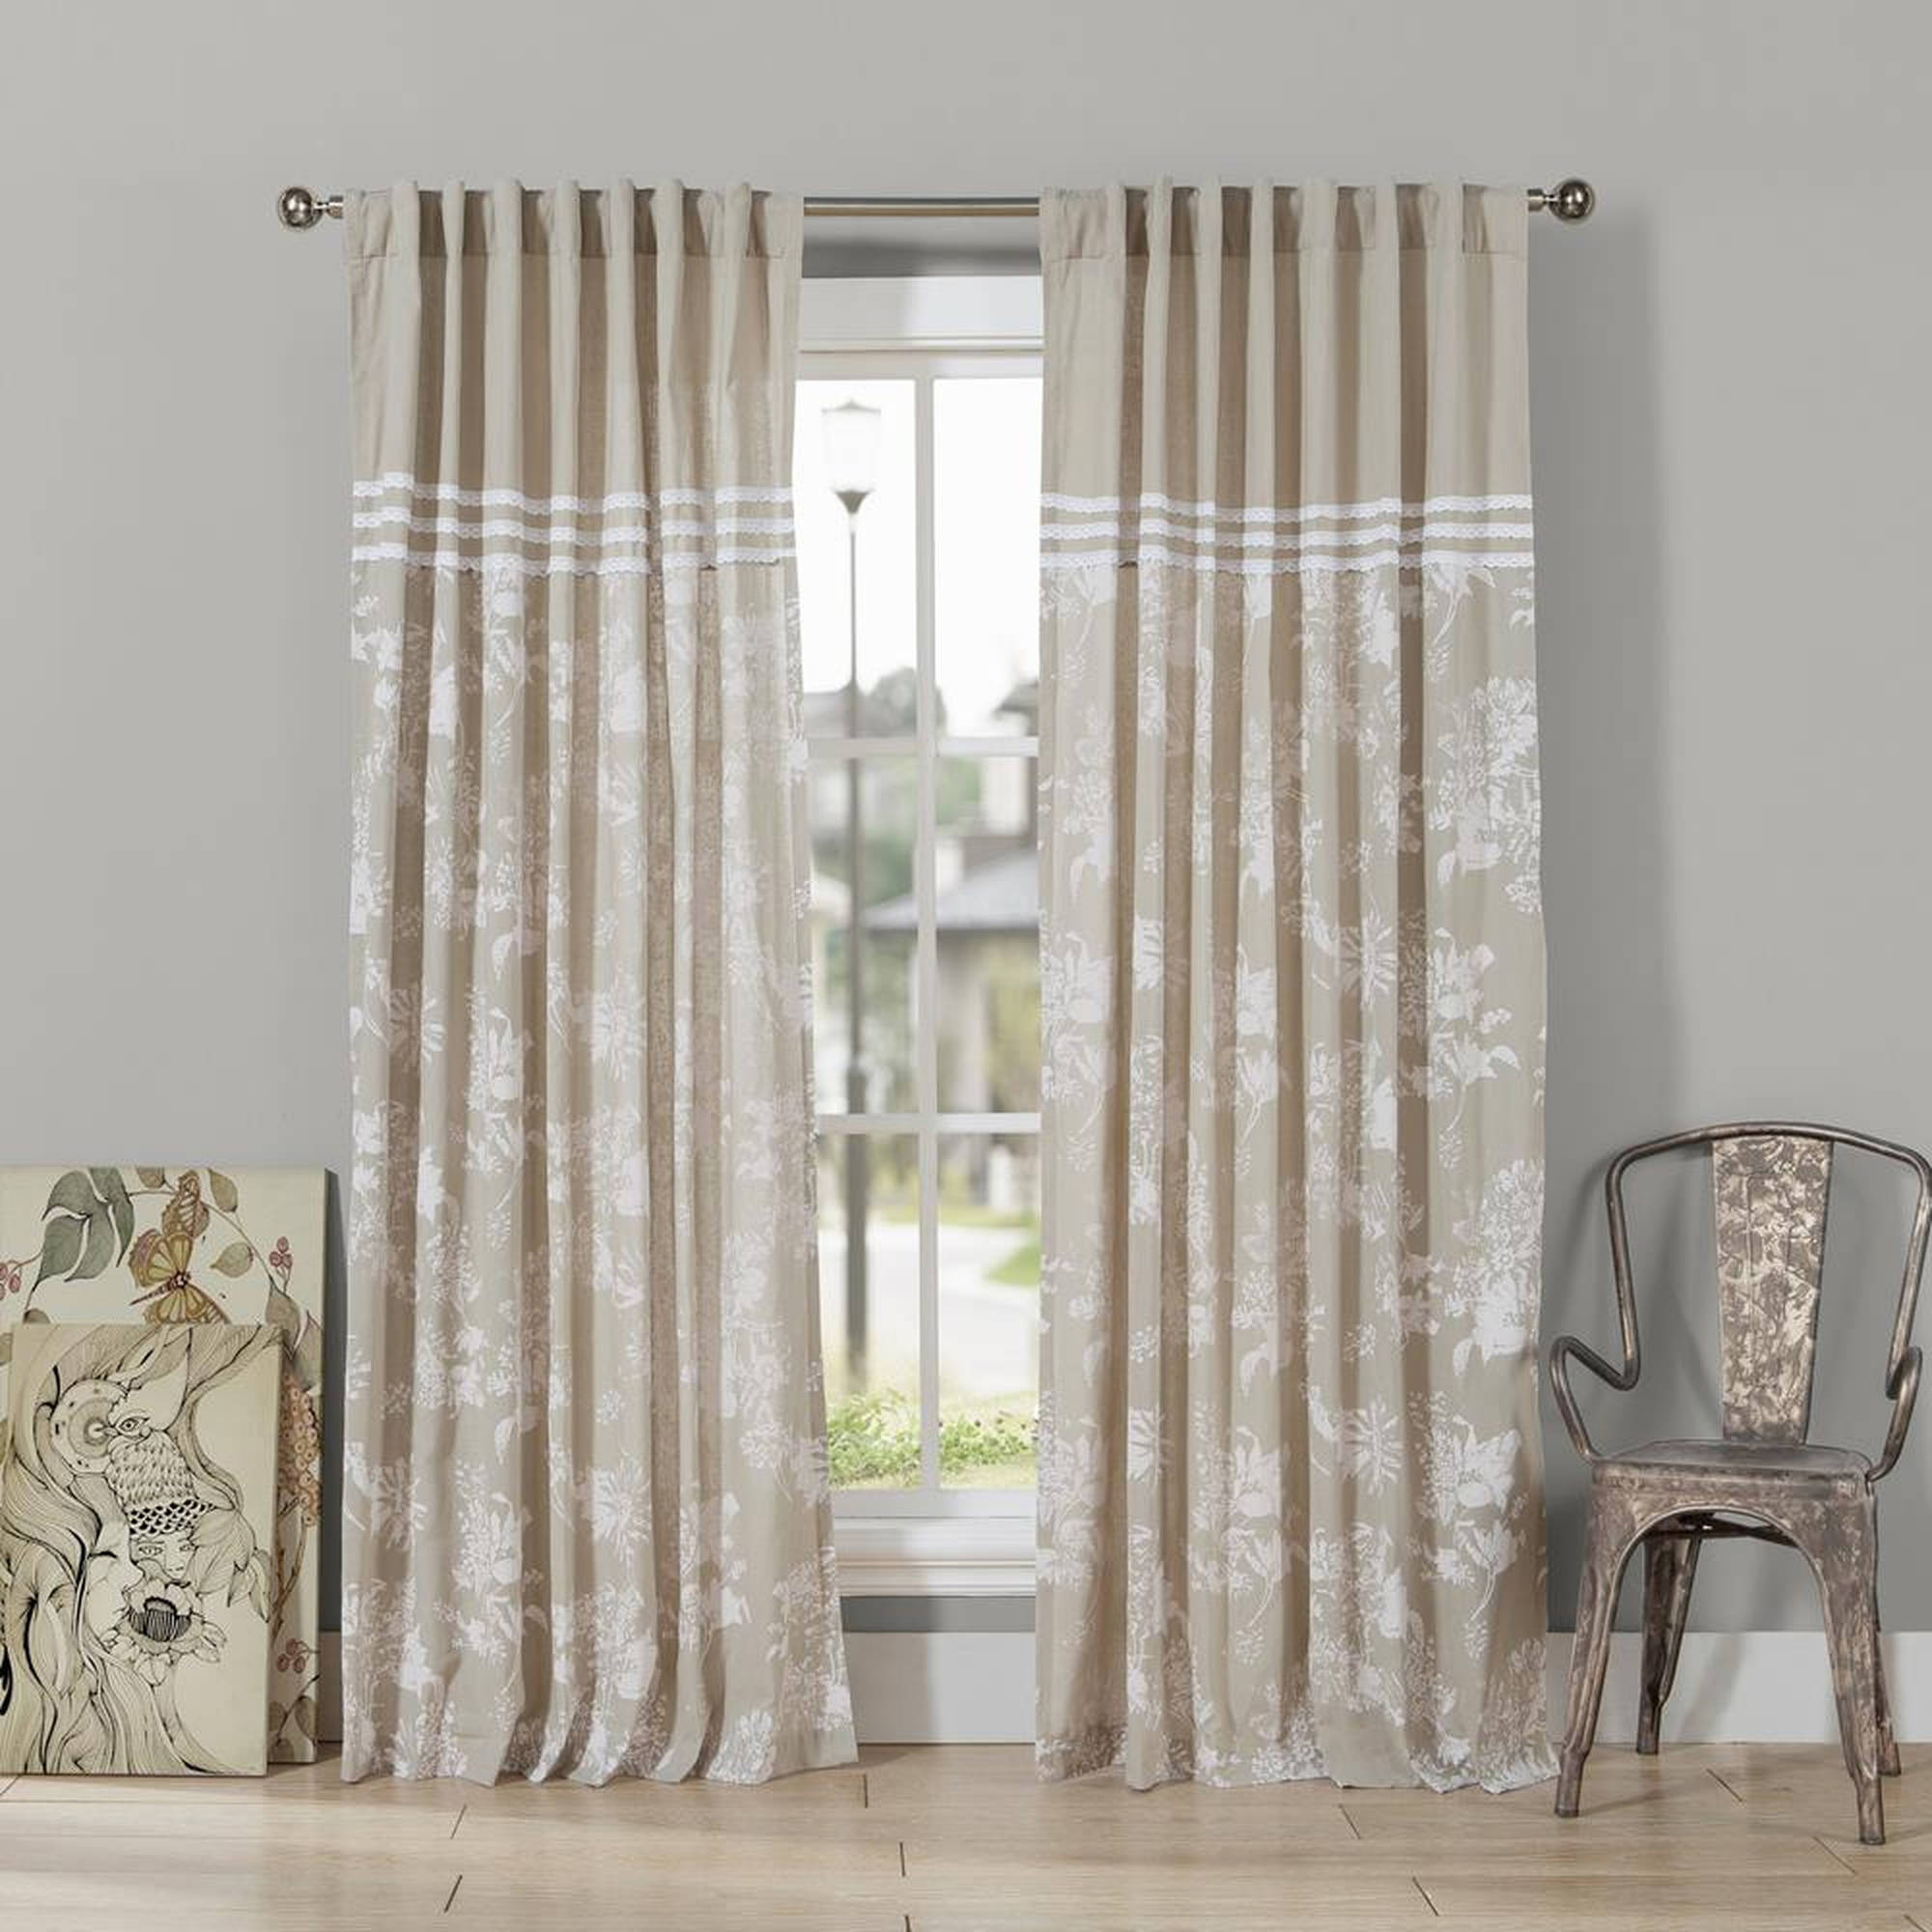 Clara Polycotton Shower Curtain with Three Lines Lace Border